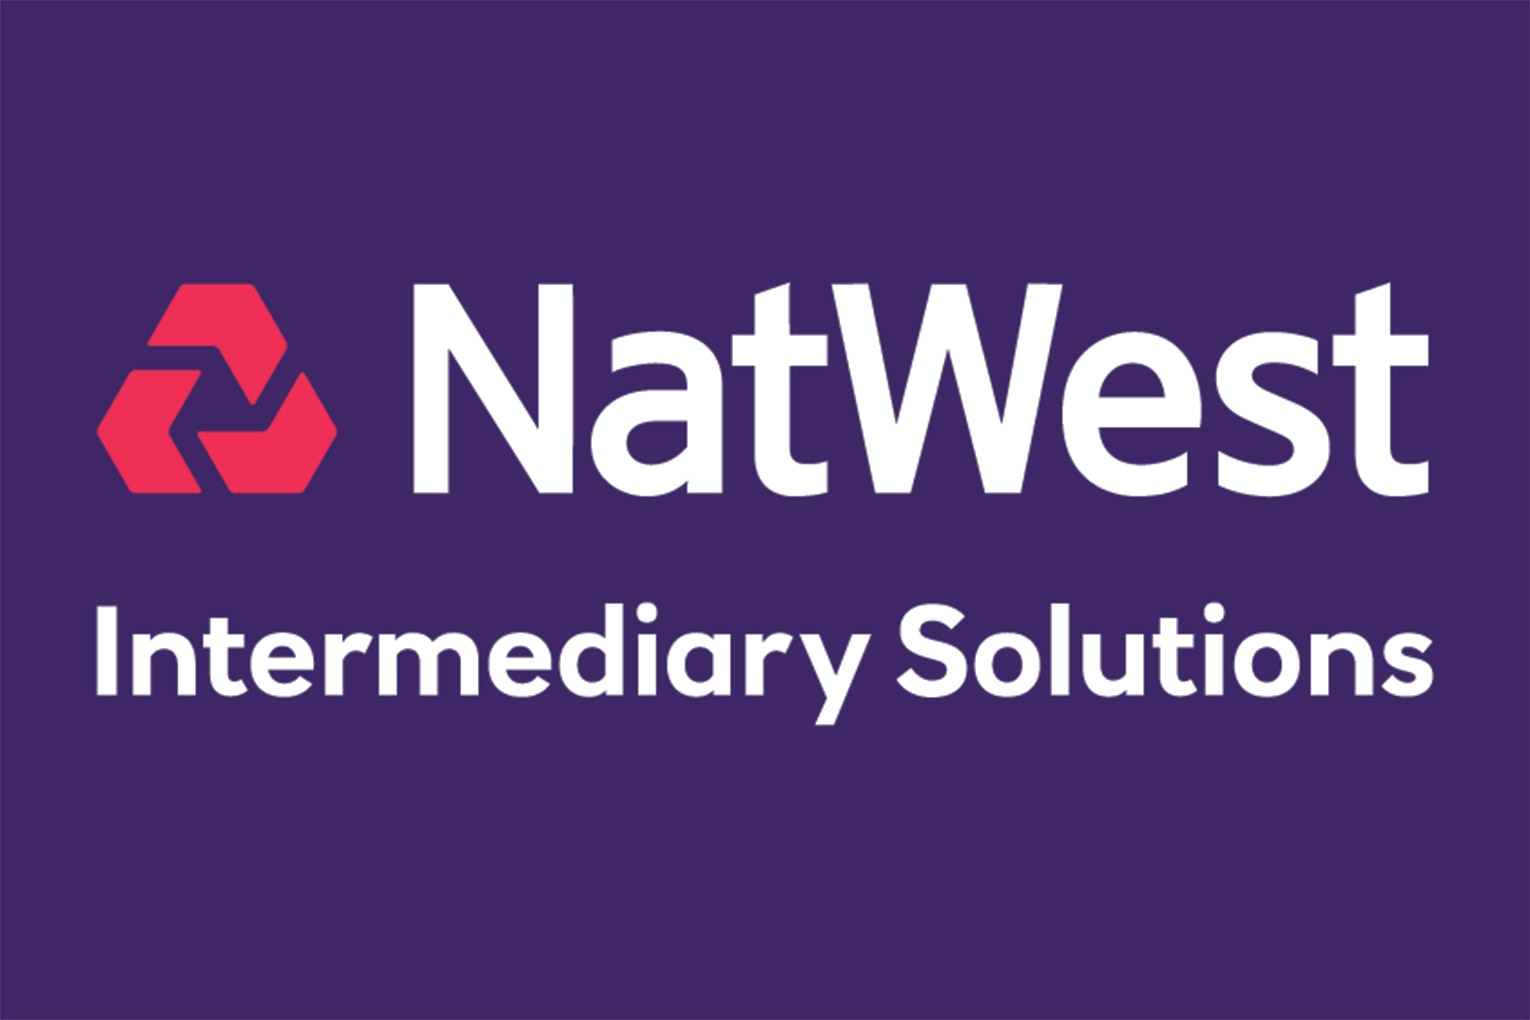 natwest reveals its mcd timetable bestadvice natwest invoice finance